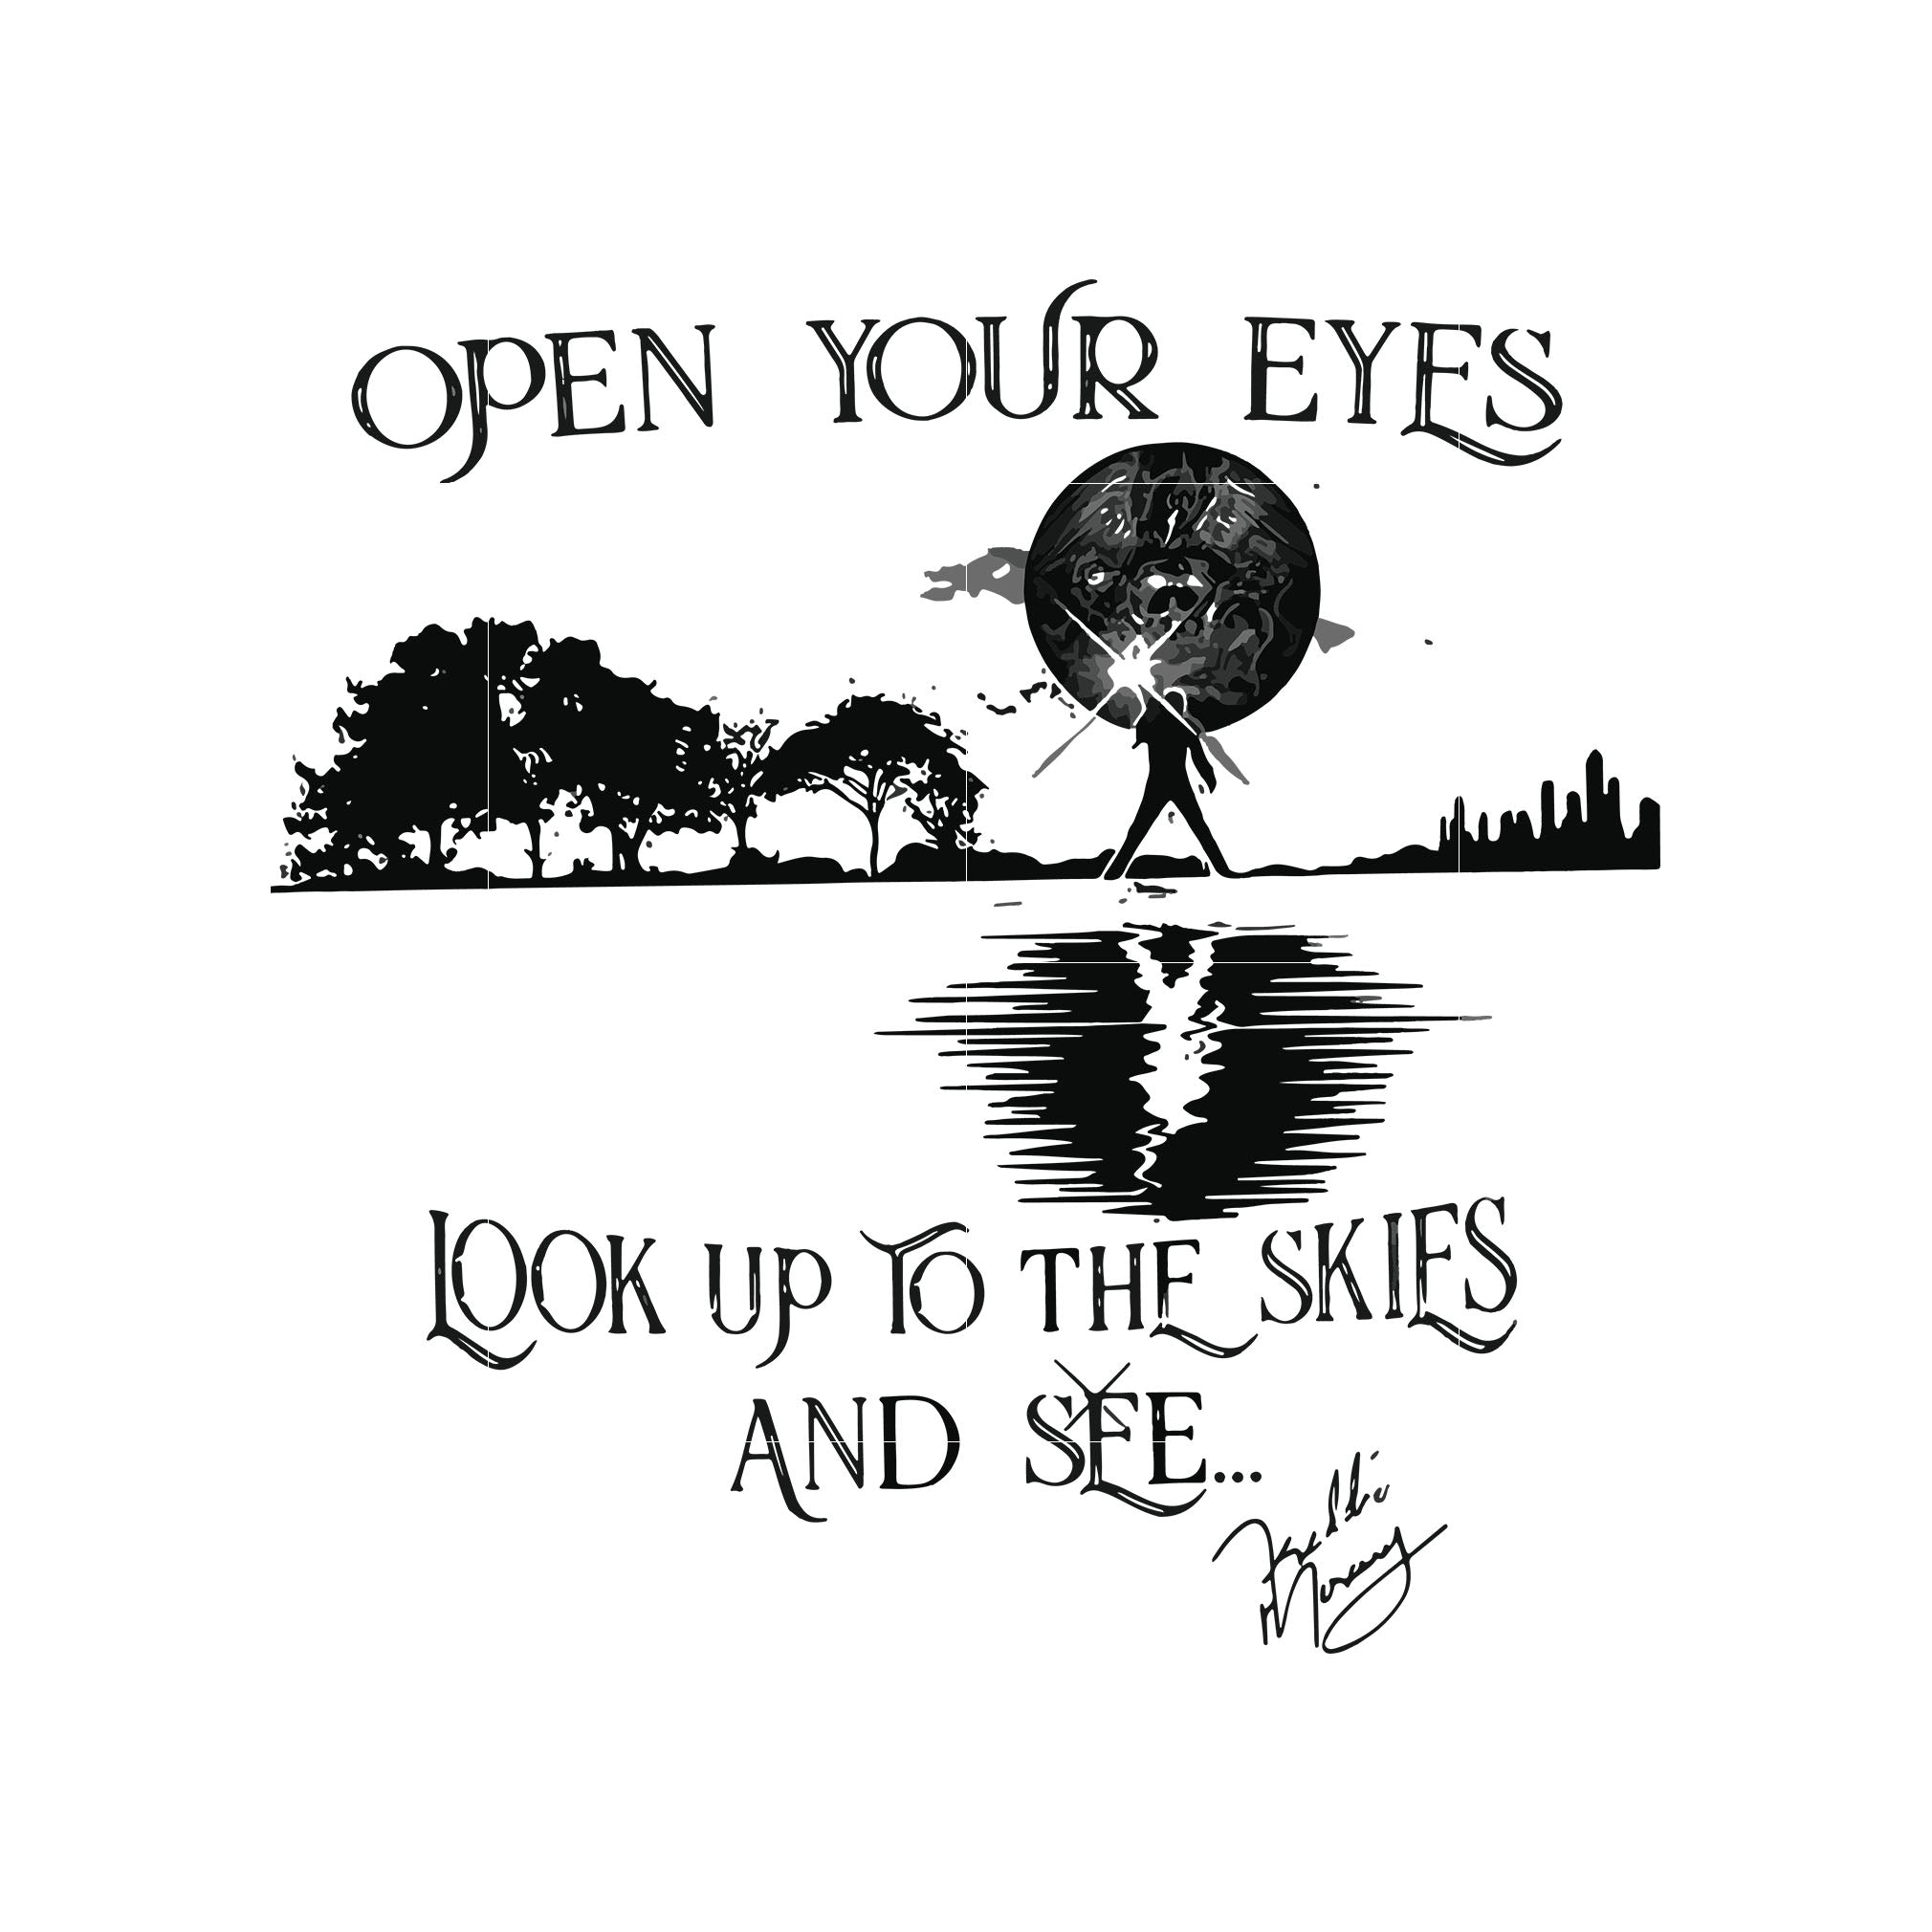 Open your eyes look up to the skies and see svg ,dxf,eps,png digital file